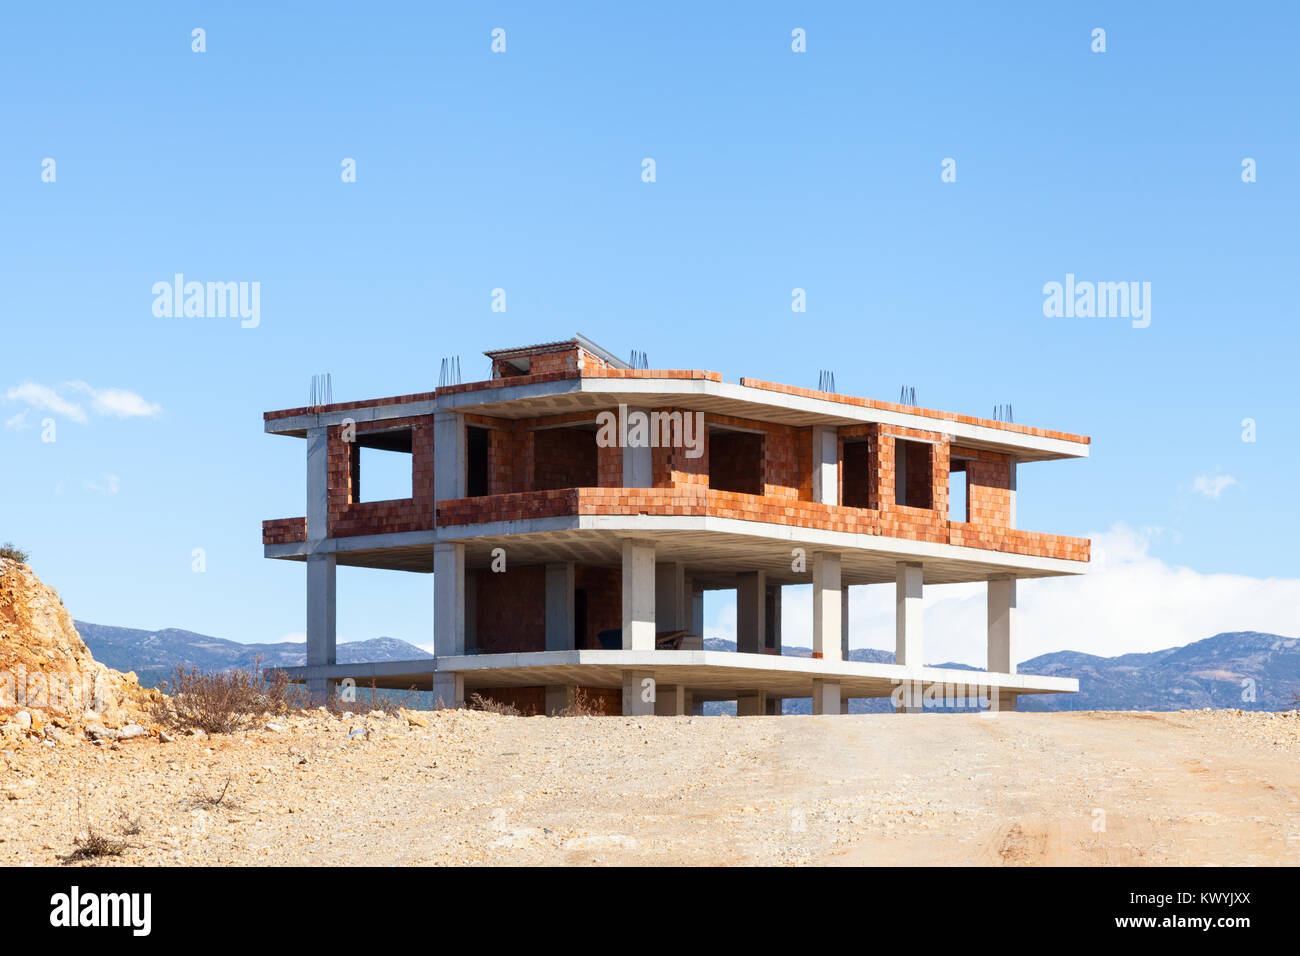 A new house under construction is pictured in Turkler in southern Turkey. - Stock Image